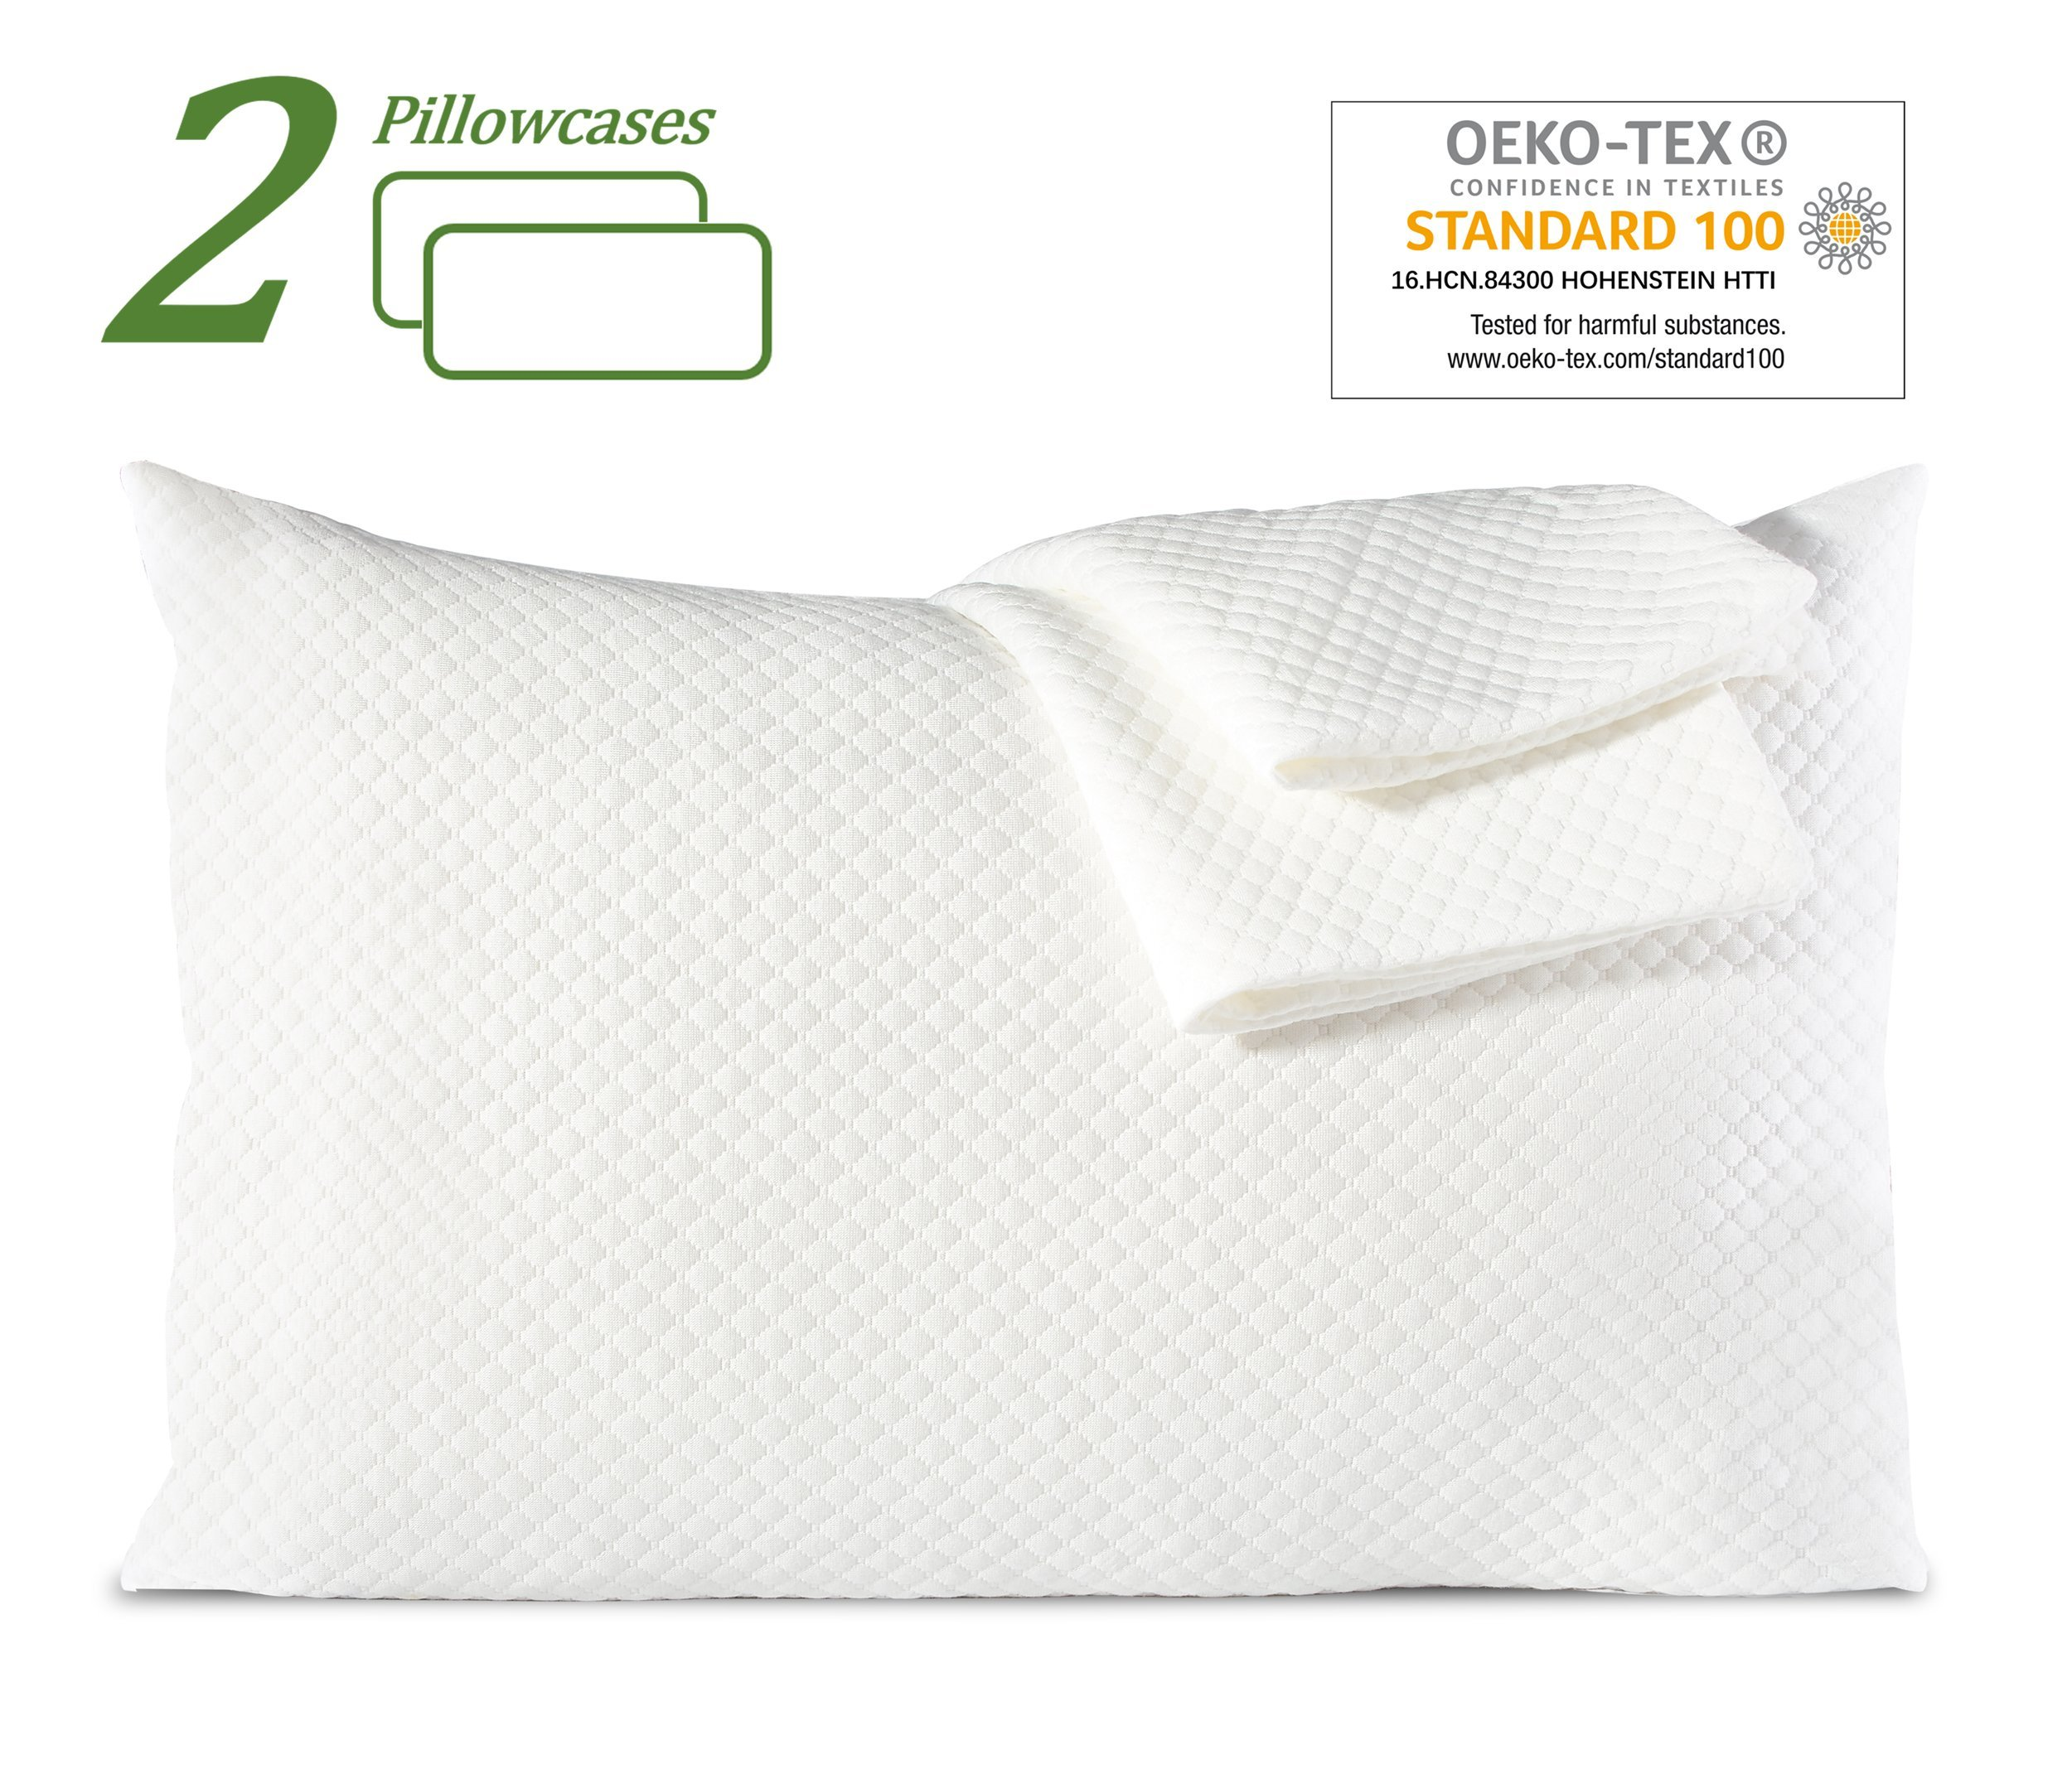 Queen Standard Size Pillow Cases Set of 2 Pillowcases Soft Dust Mite Bed Bug Proof Pillow Covers 20x30 White Comfortable Premium Bamboo Protector-Envelope Closure Eco-friendly Oeko-tex For Sleeping